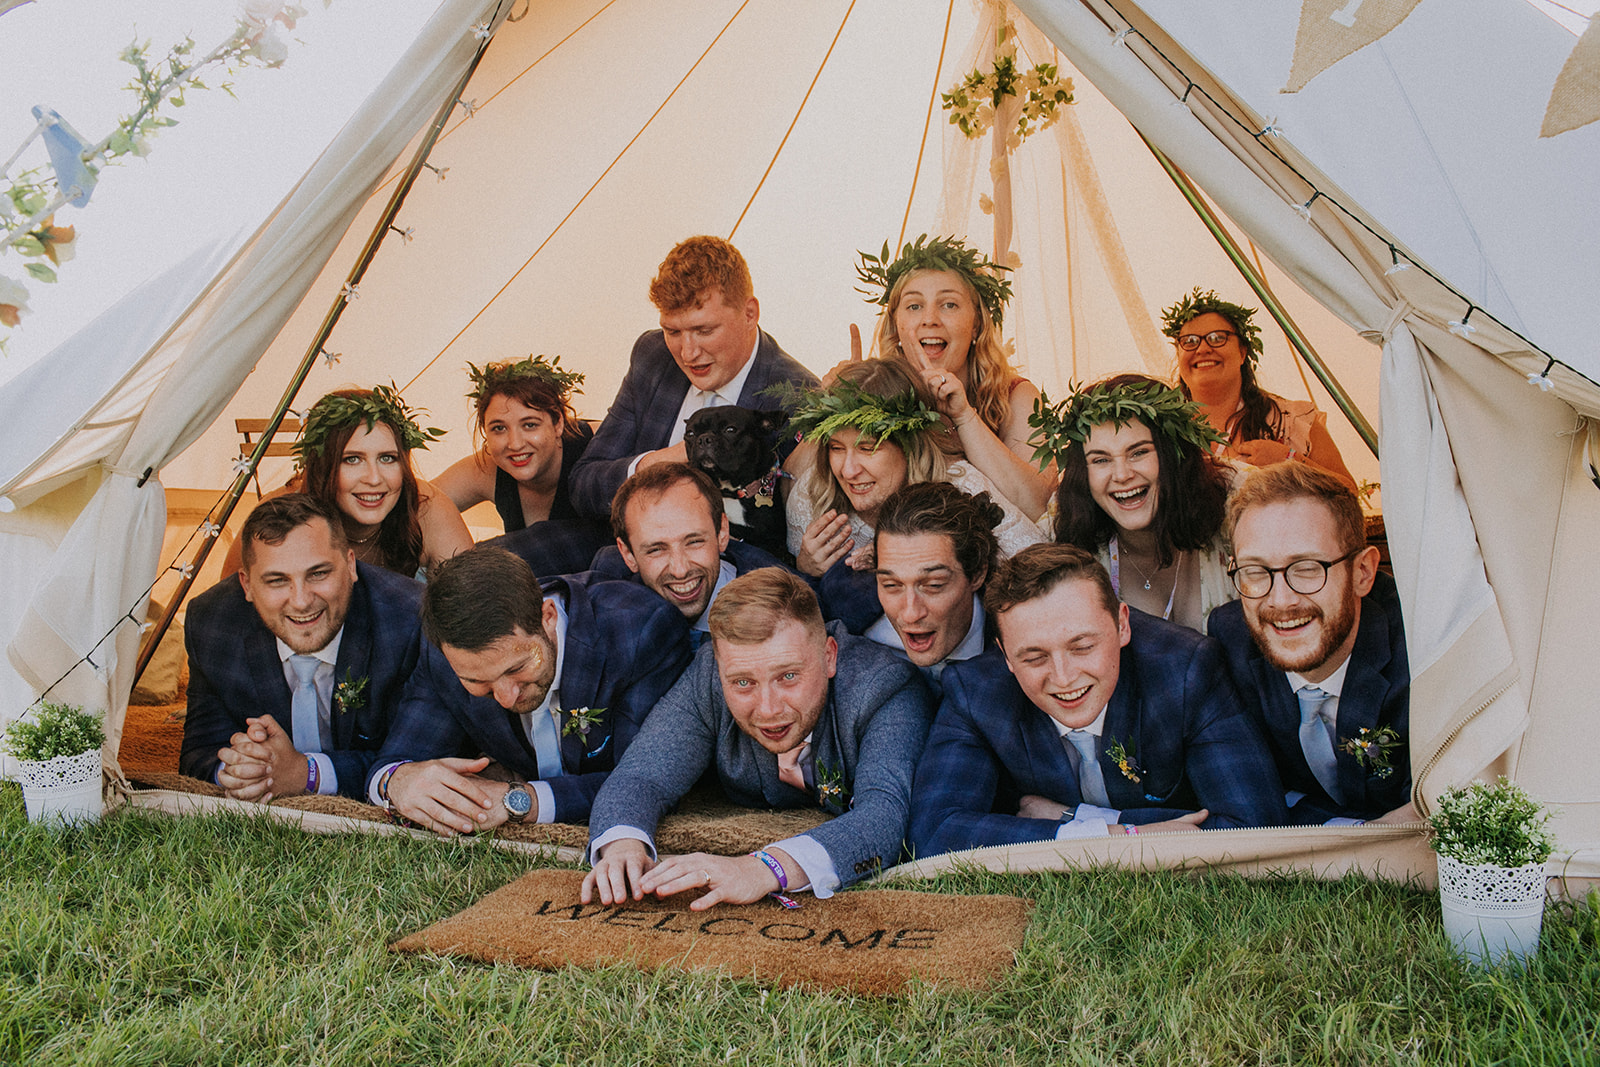 Bridal party crashing the glamping tent cattows farm wedding with sami tipi